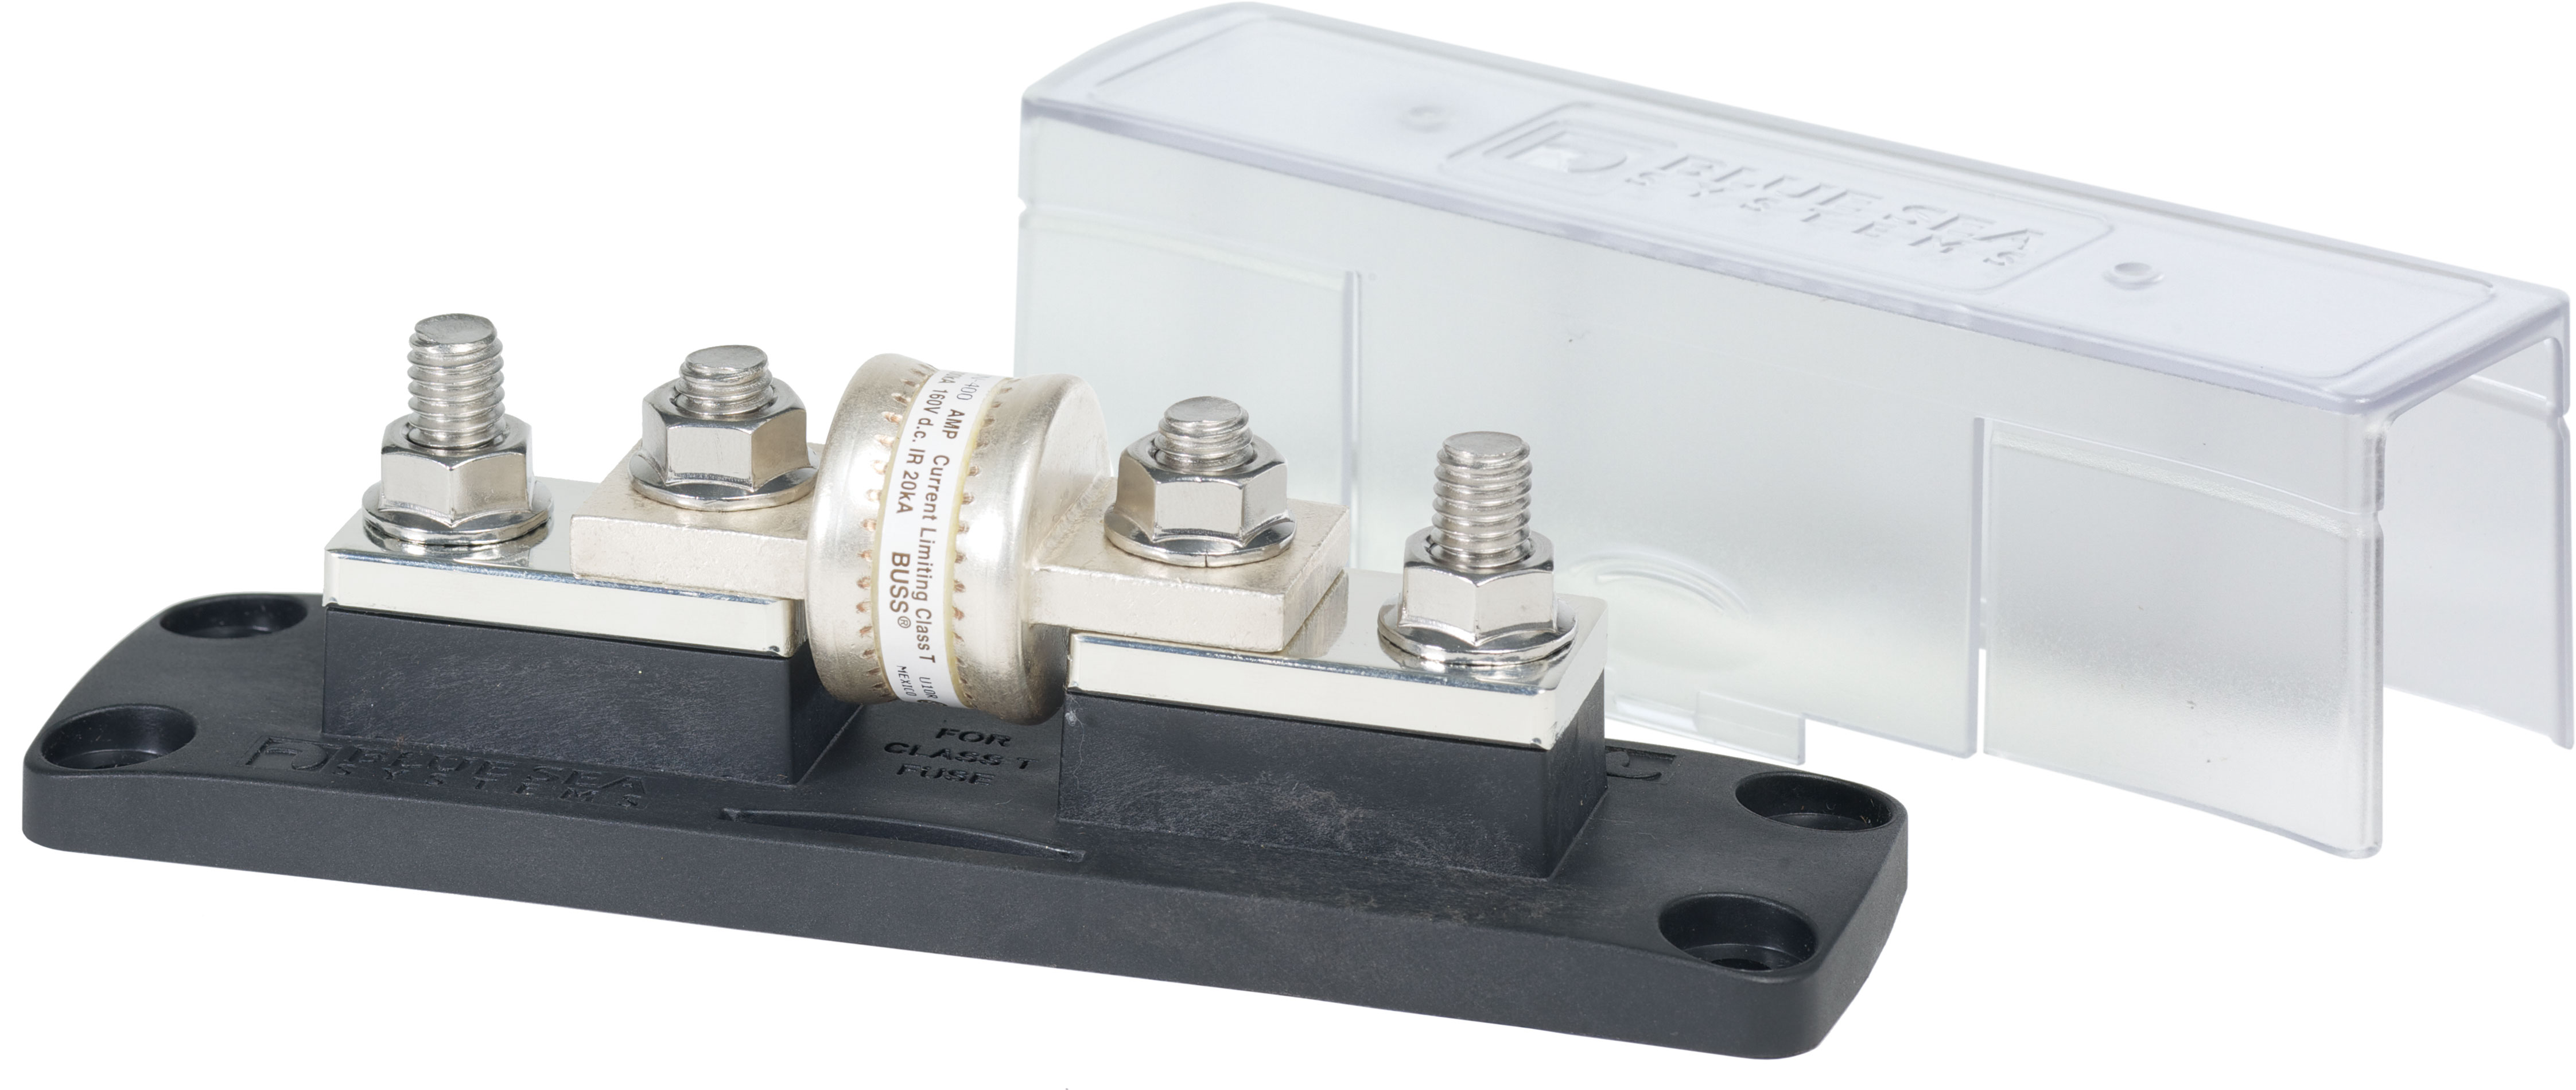 class t fuse block insulating cover 225 to 400a blue sea product image